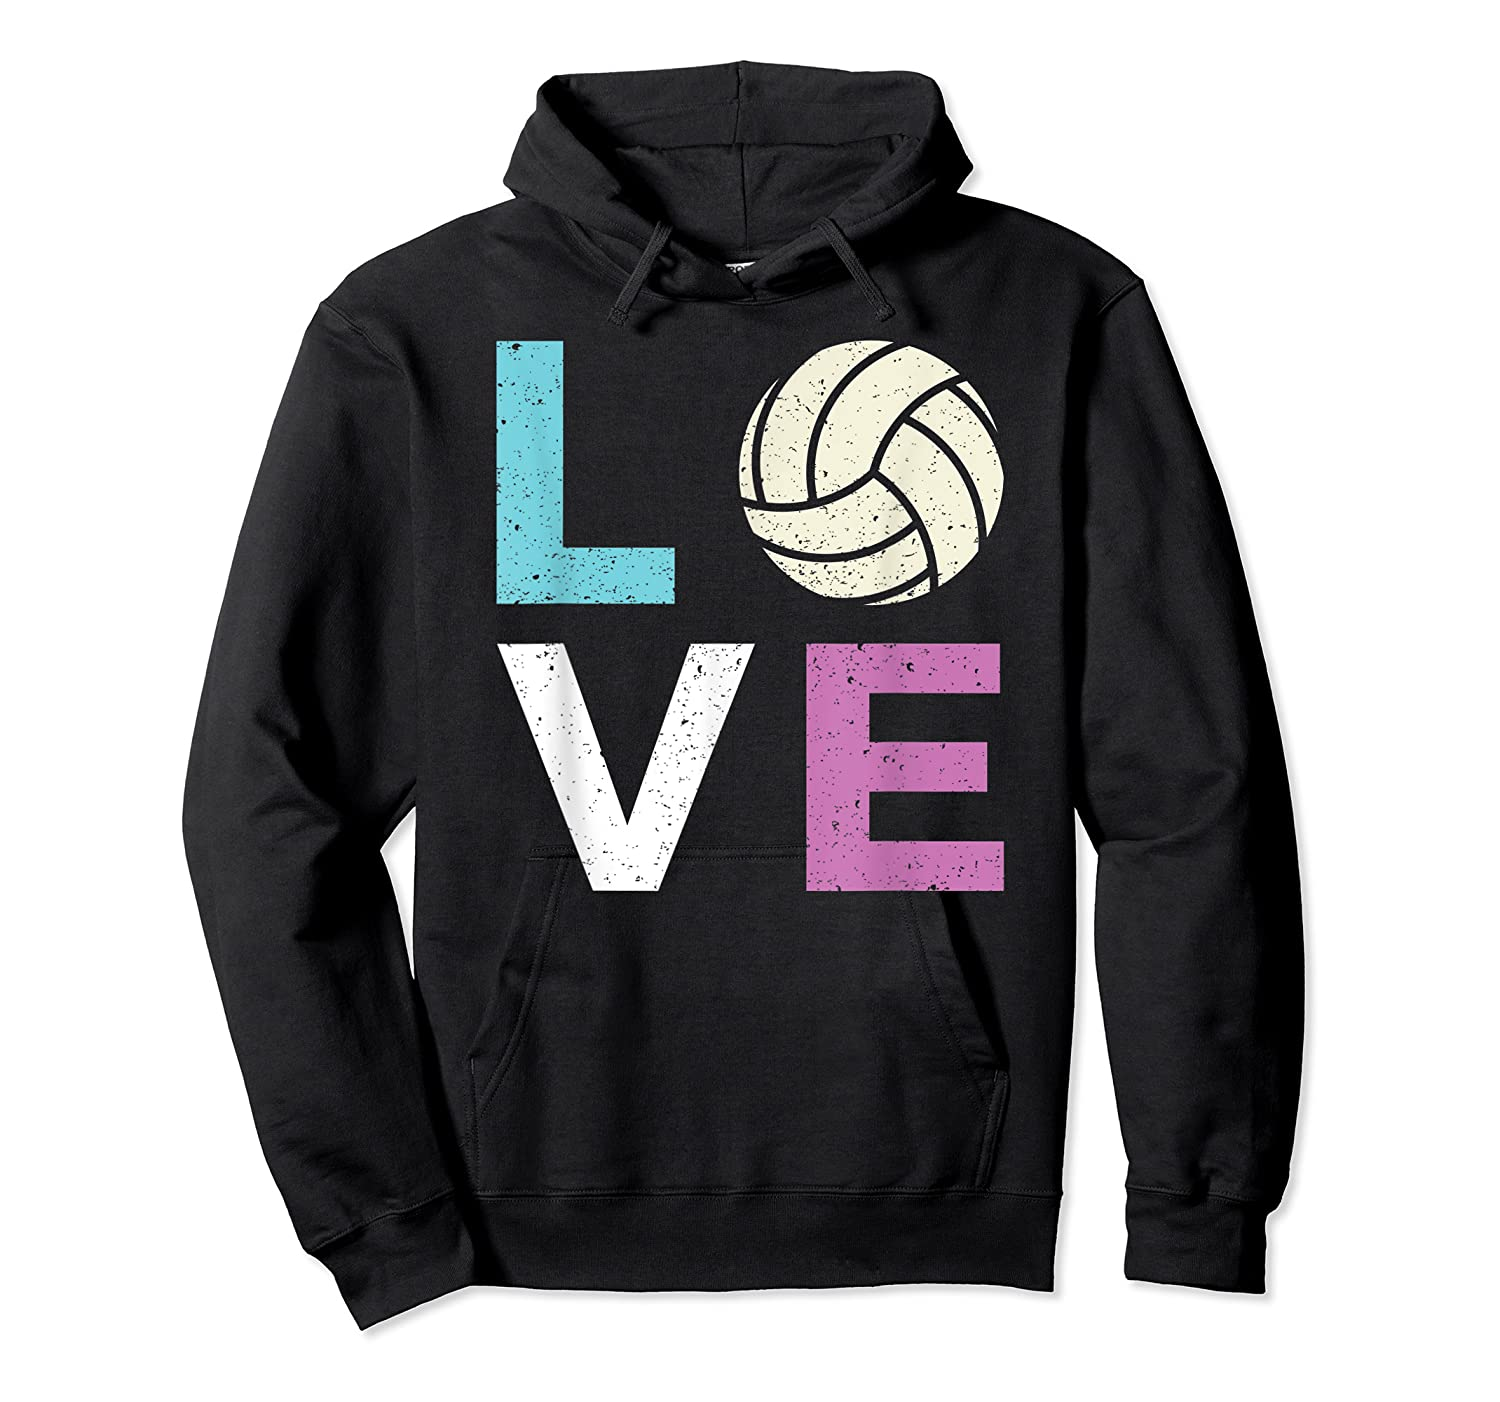 And A Volleyball Shirts Unisex Pullover Hoodie